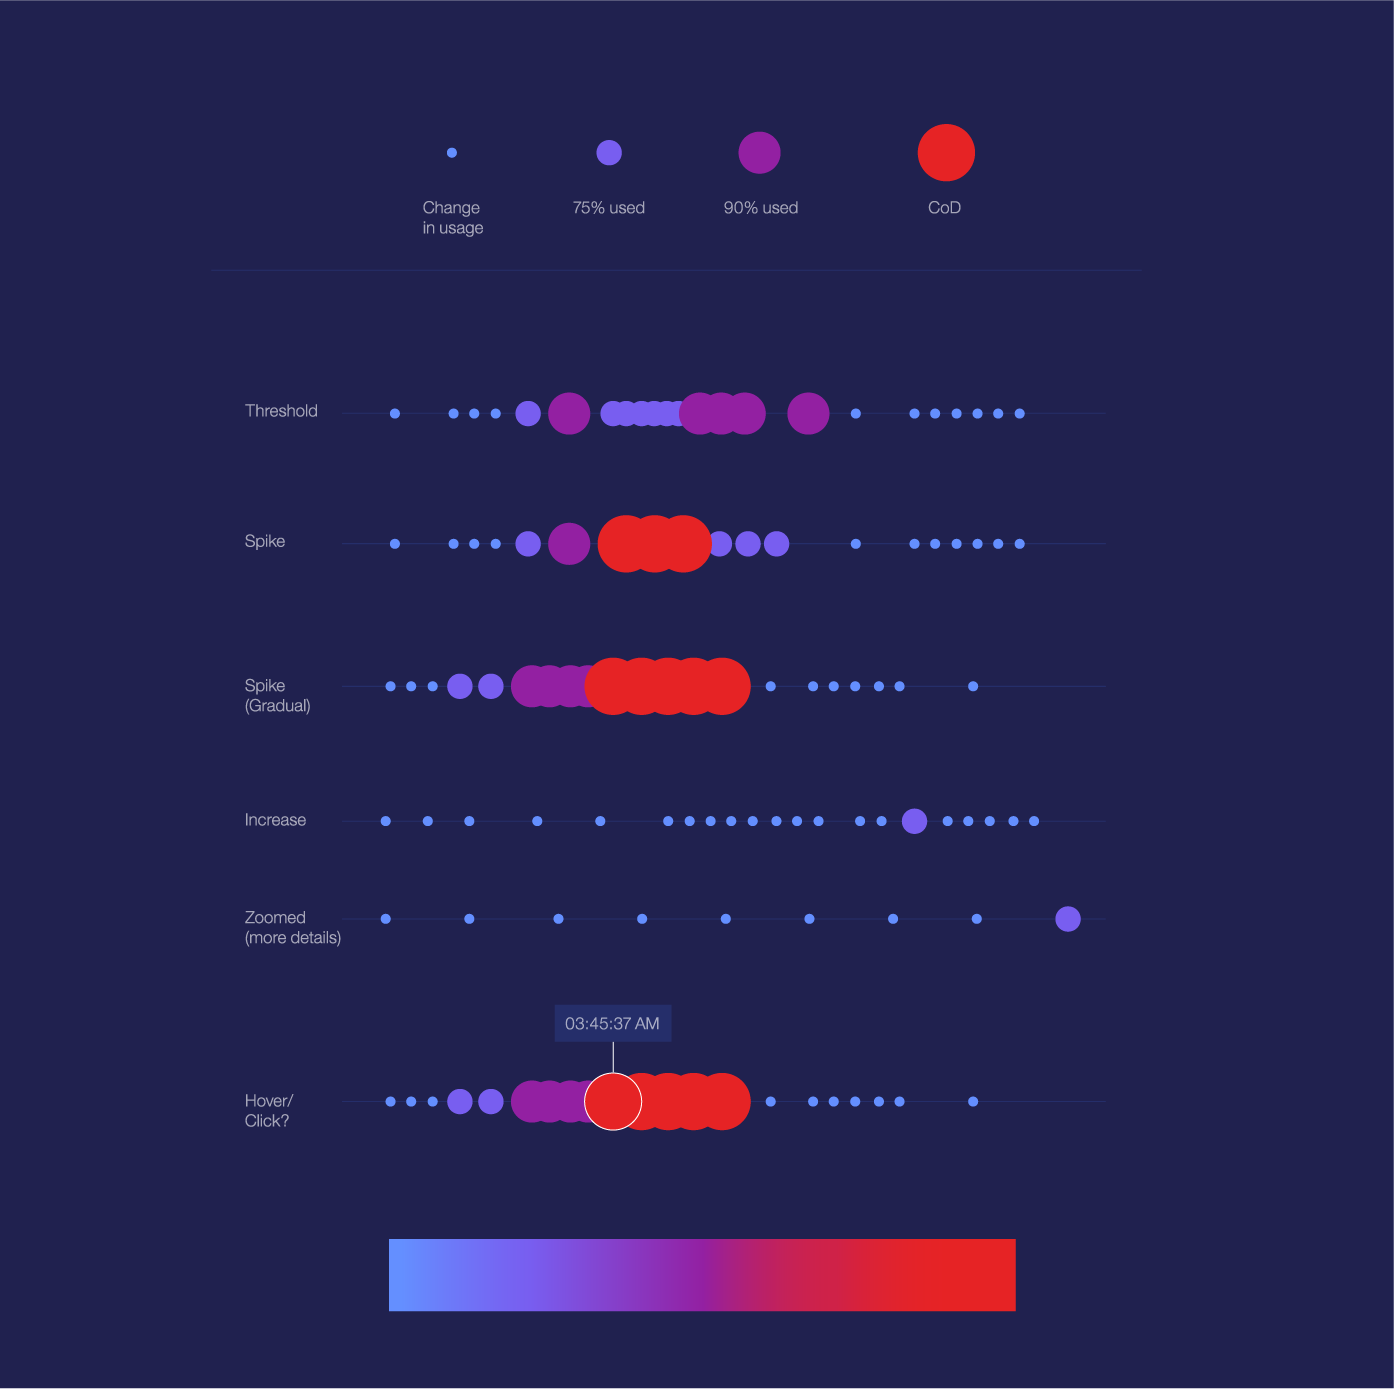 It S All Relative Data Visualization For Ux Research Data By Stefanie Owens Ux Collective